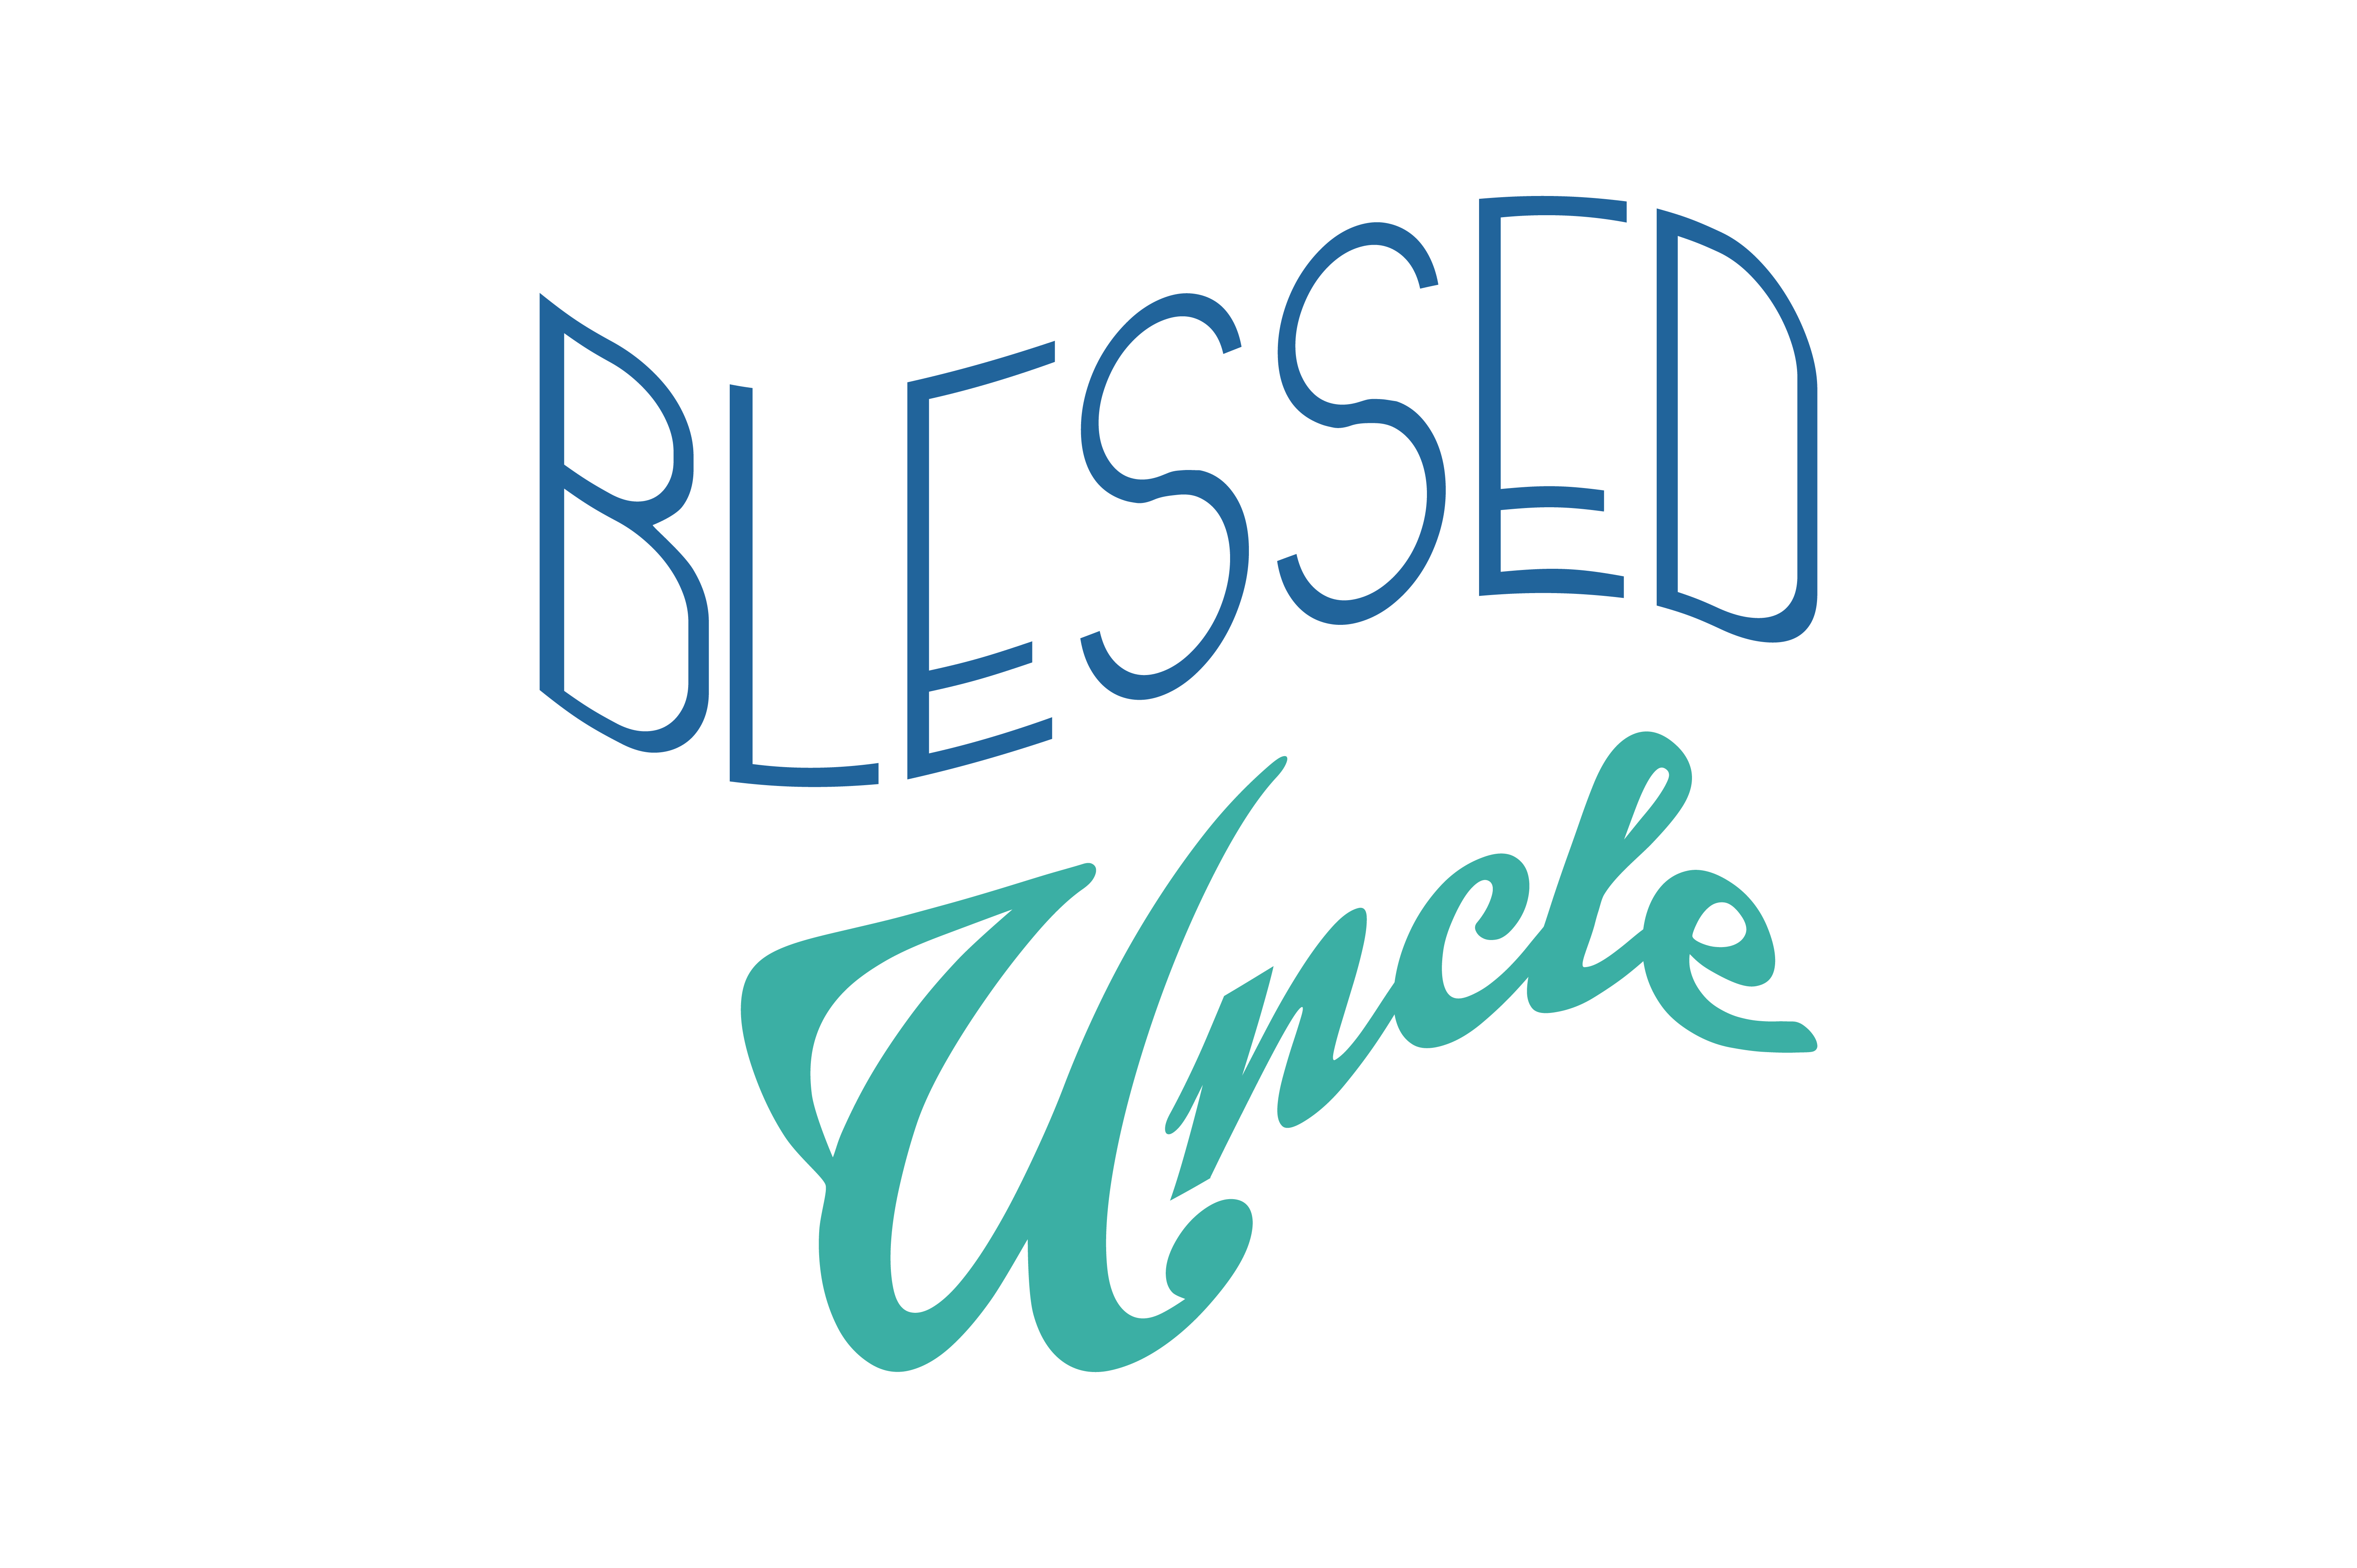 Download Free Blessed Uncle Quote Svg Cut Graphic By Thelucky Creative Fabrica for Cricut Explore, Silhouette and other cutting machines.